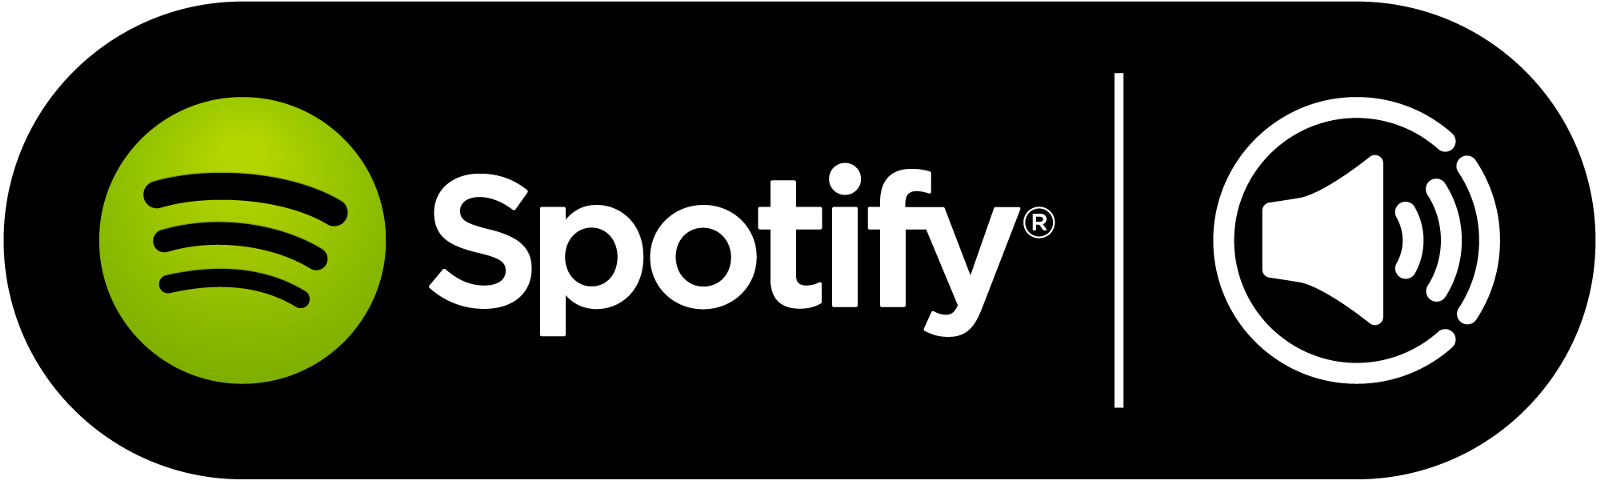 Listen on spotify logo png. Why went to the